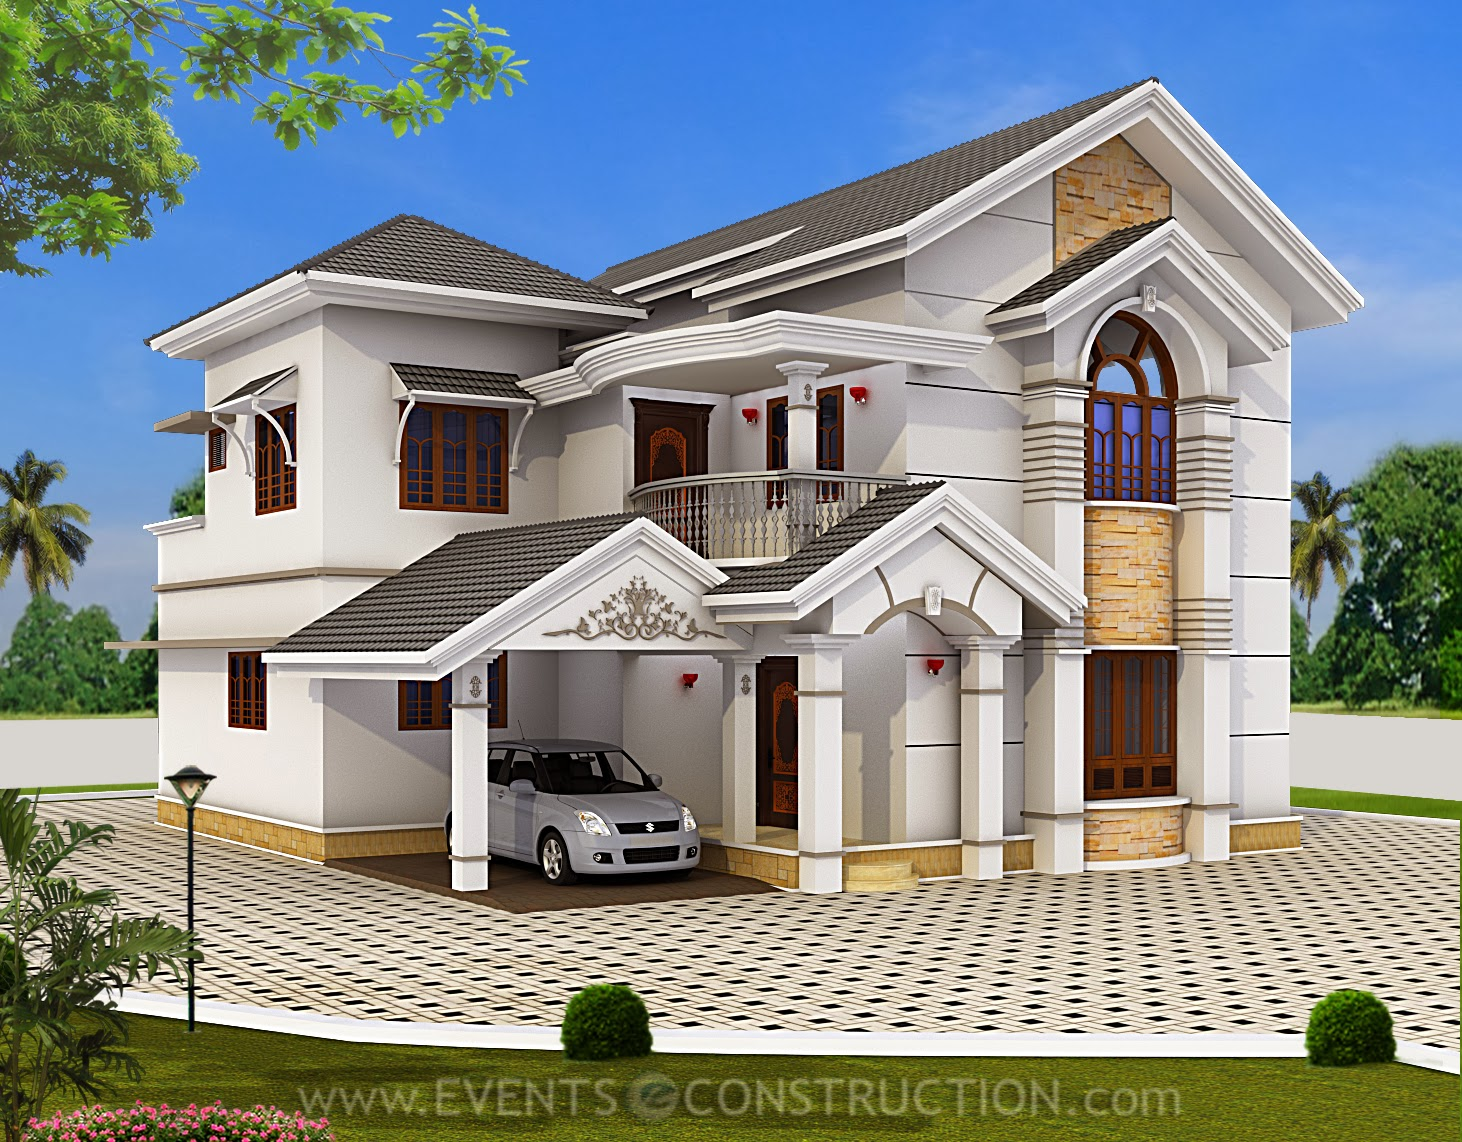 House Compound Designs Pictures: House Compound Wall Designs